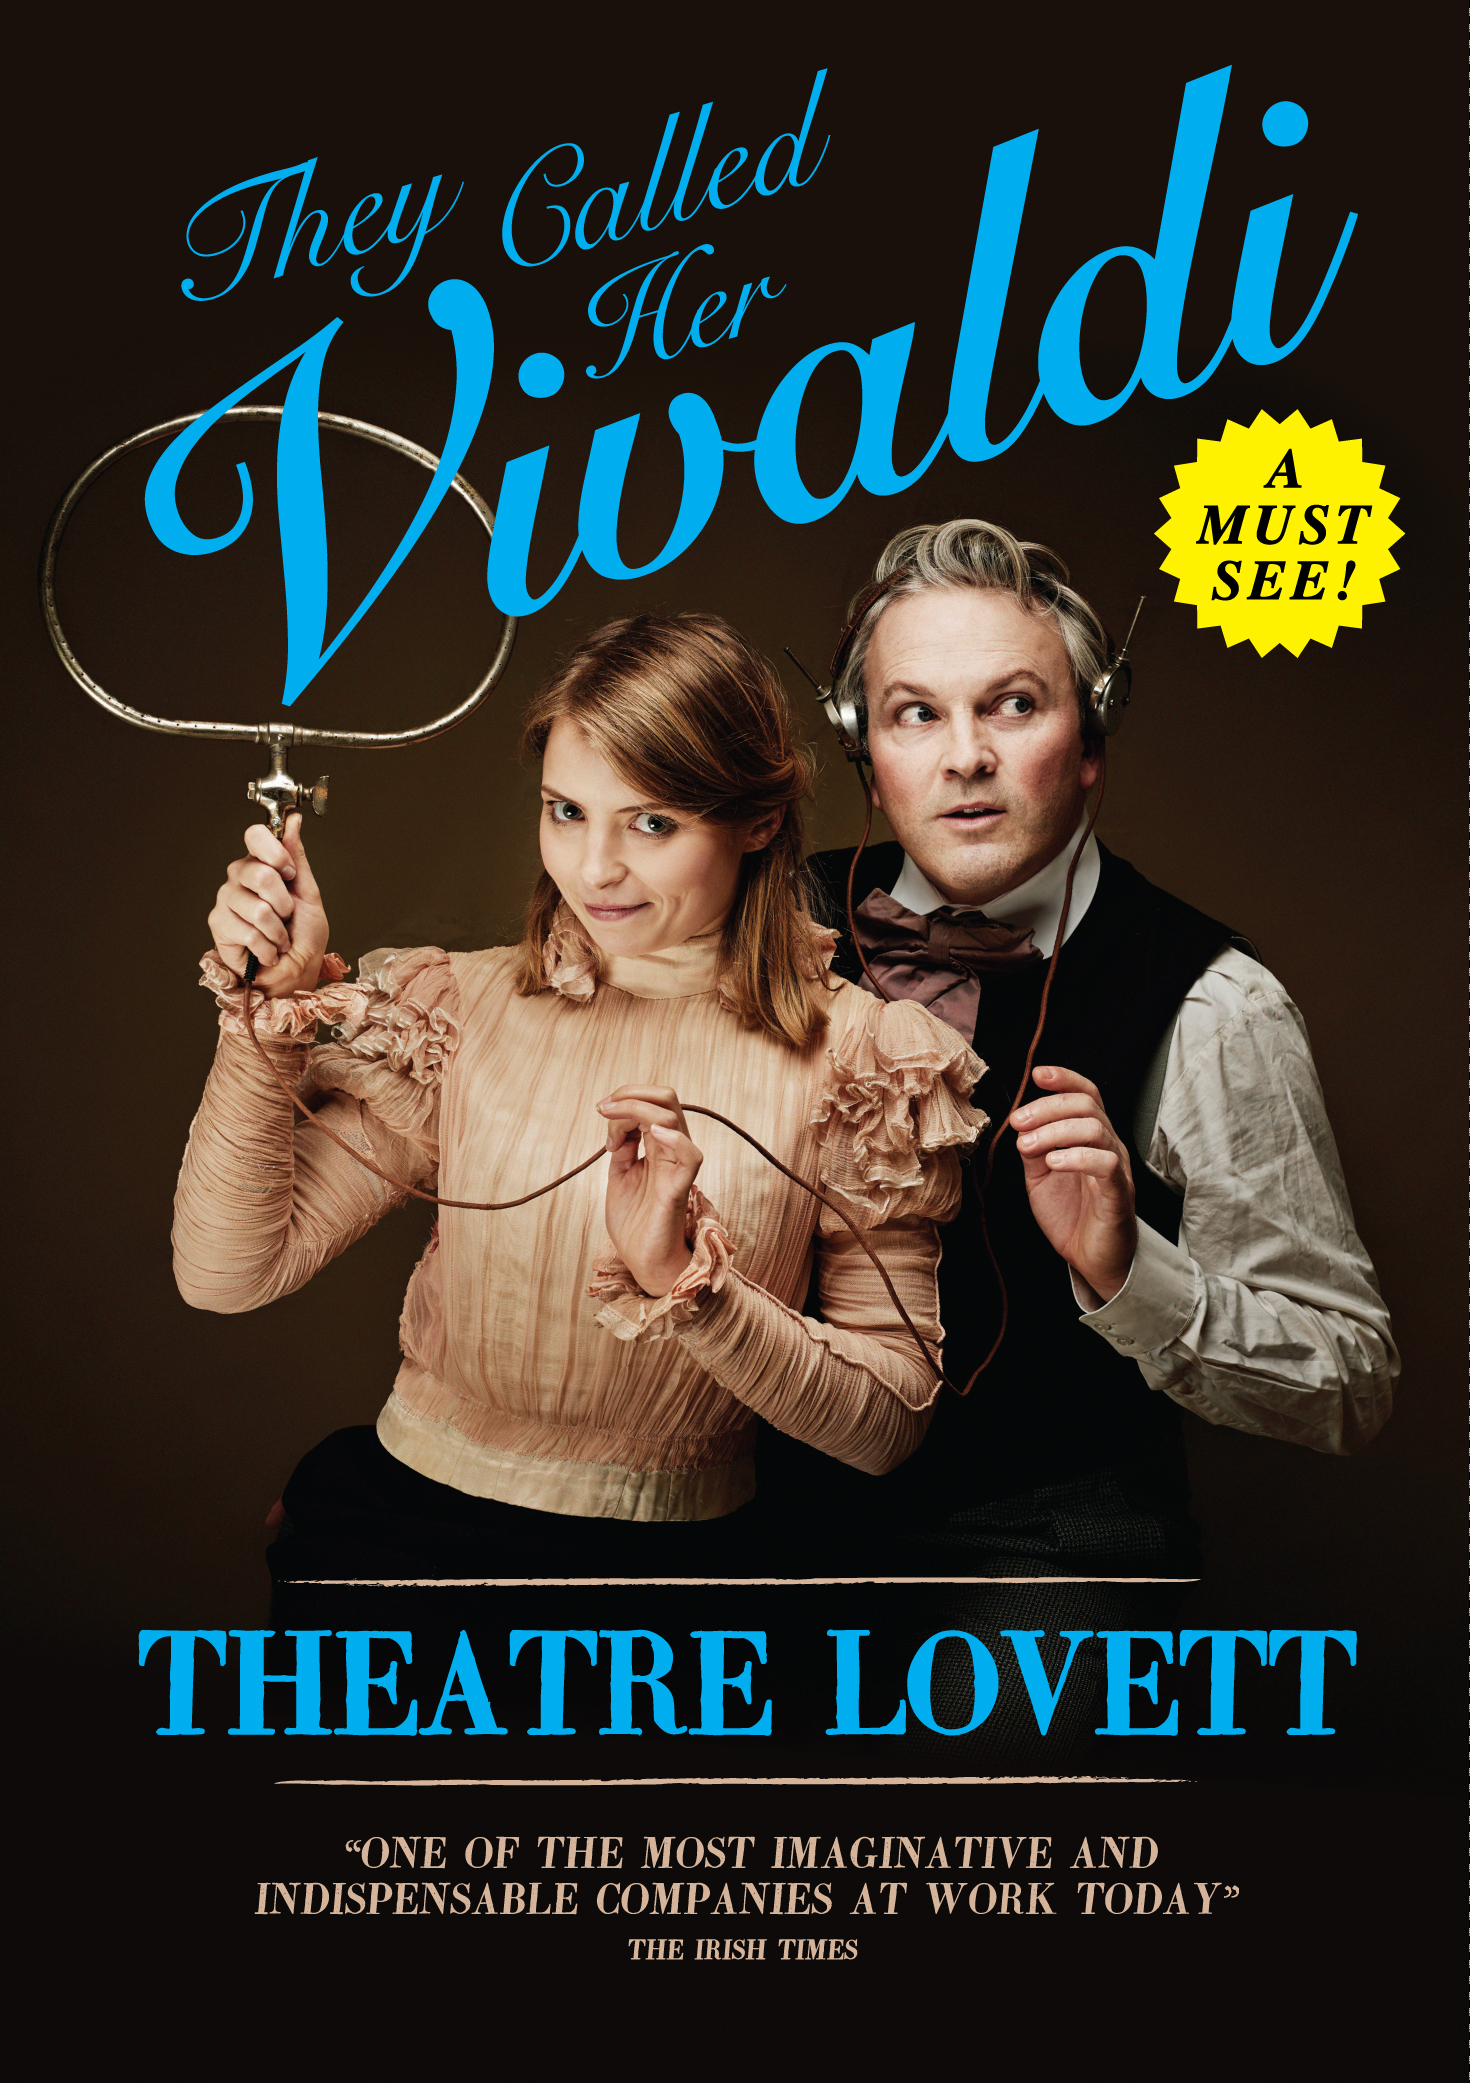 Theatre Lovett presents They called her Vivaldi at The Theatre Royal